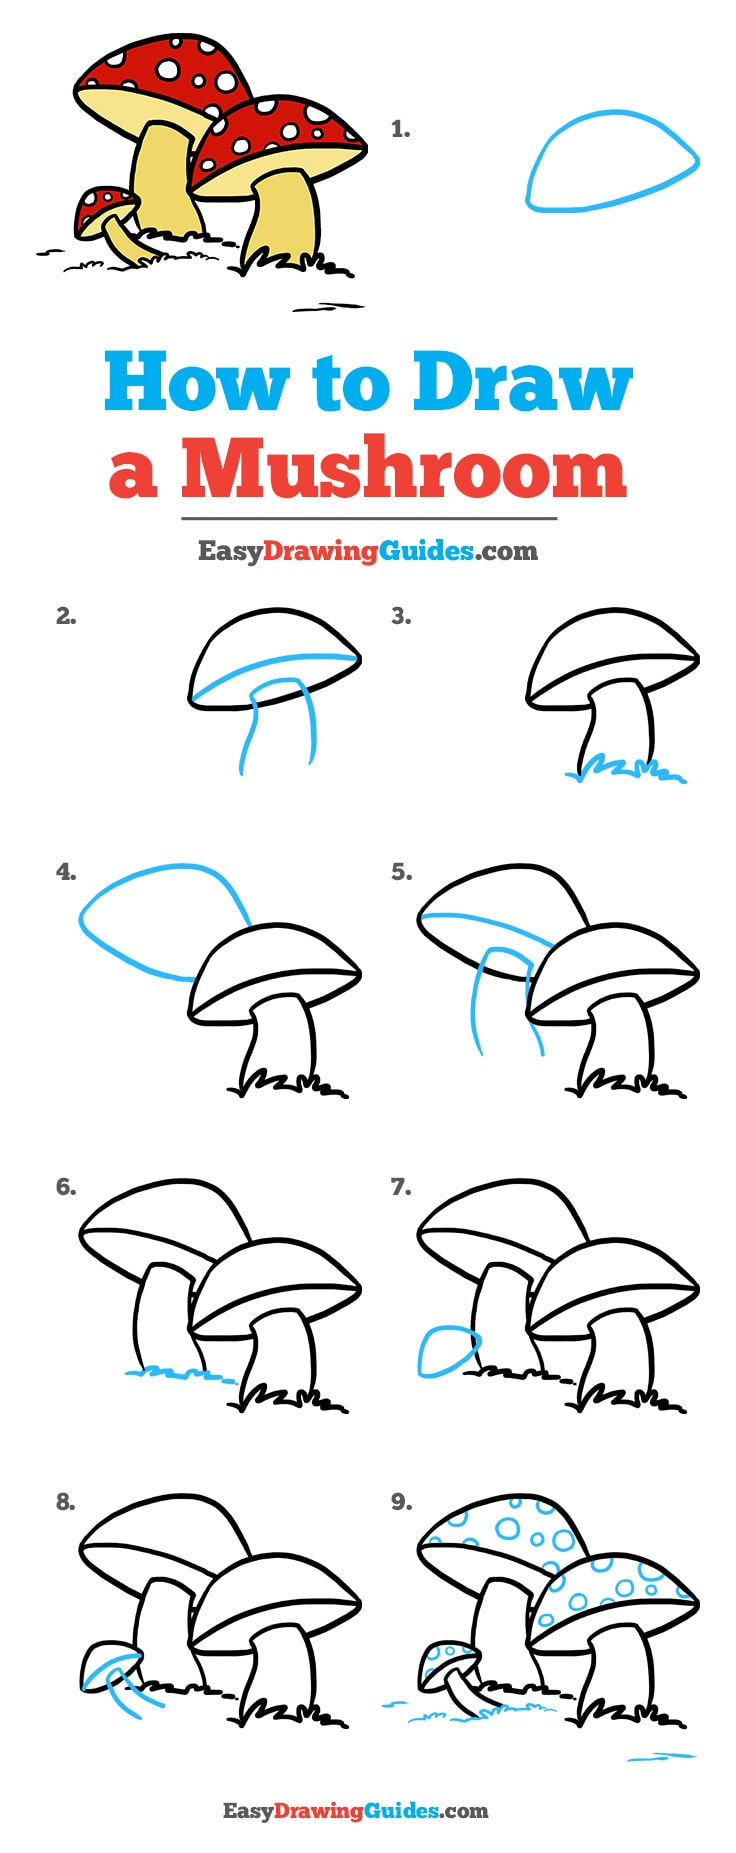 How to Draw Mushroom